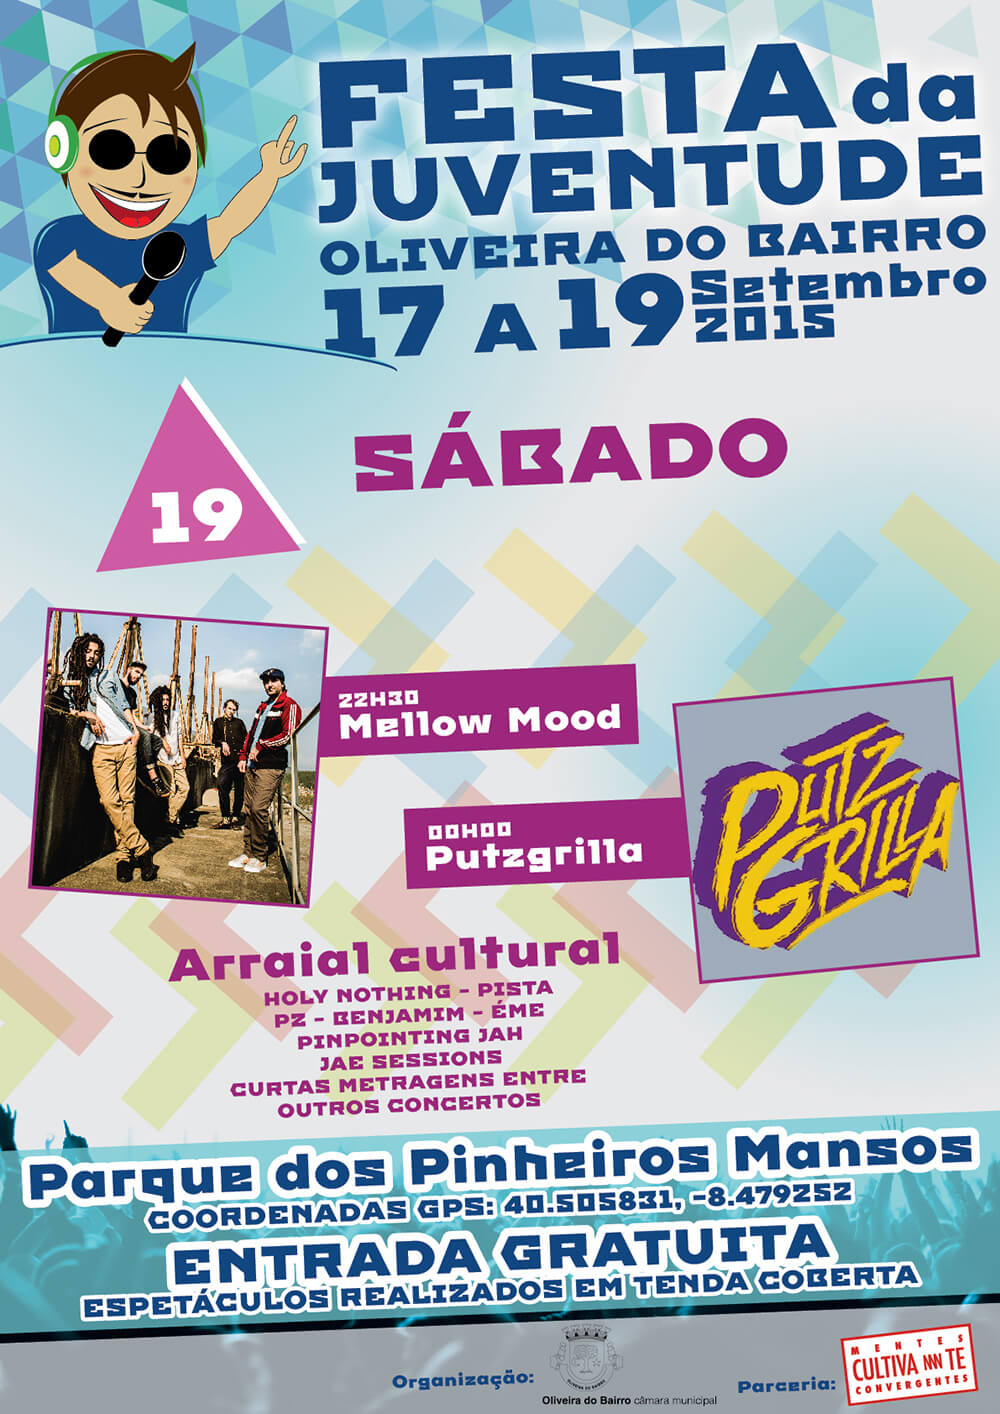 Festa da Juventude de Oliveira do Bairro - Poster for the 19th day | Luis Serra Freelancer